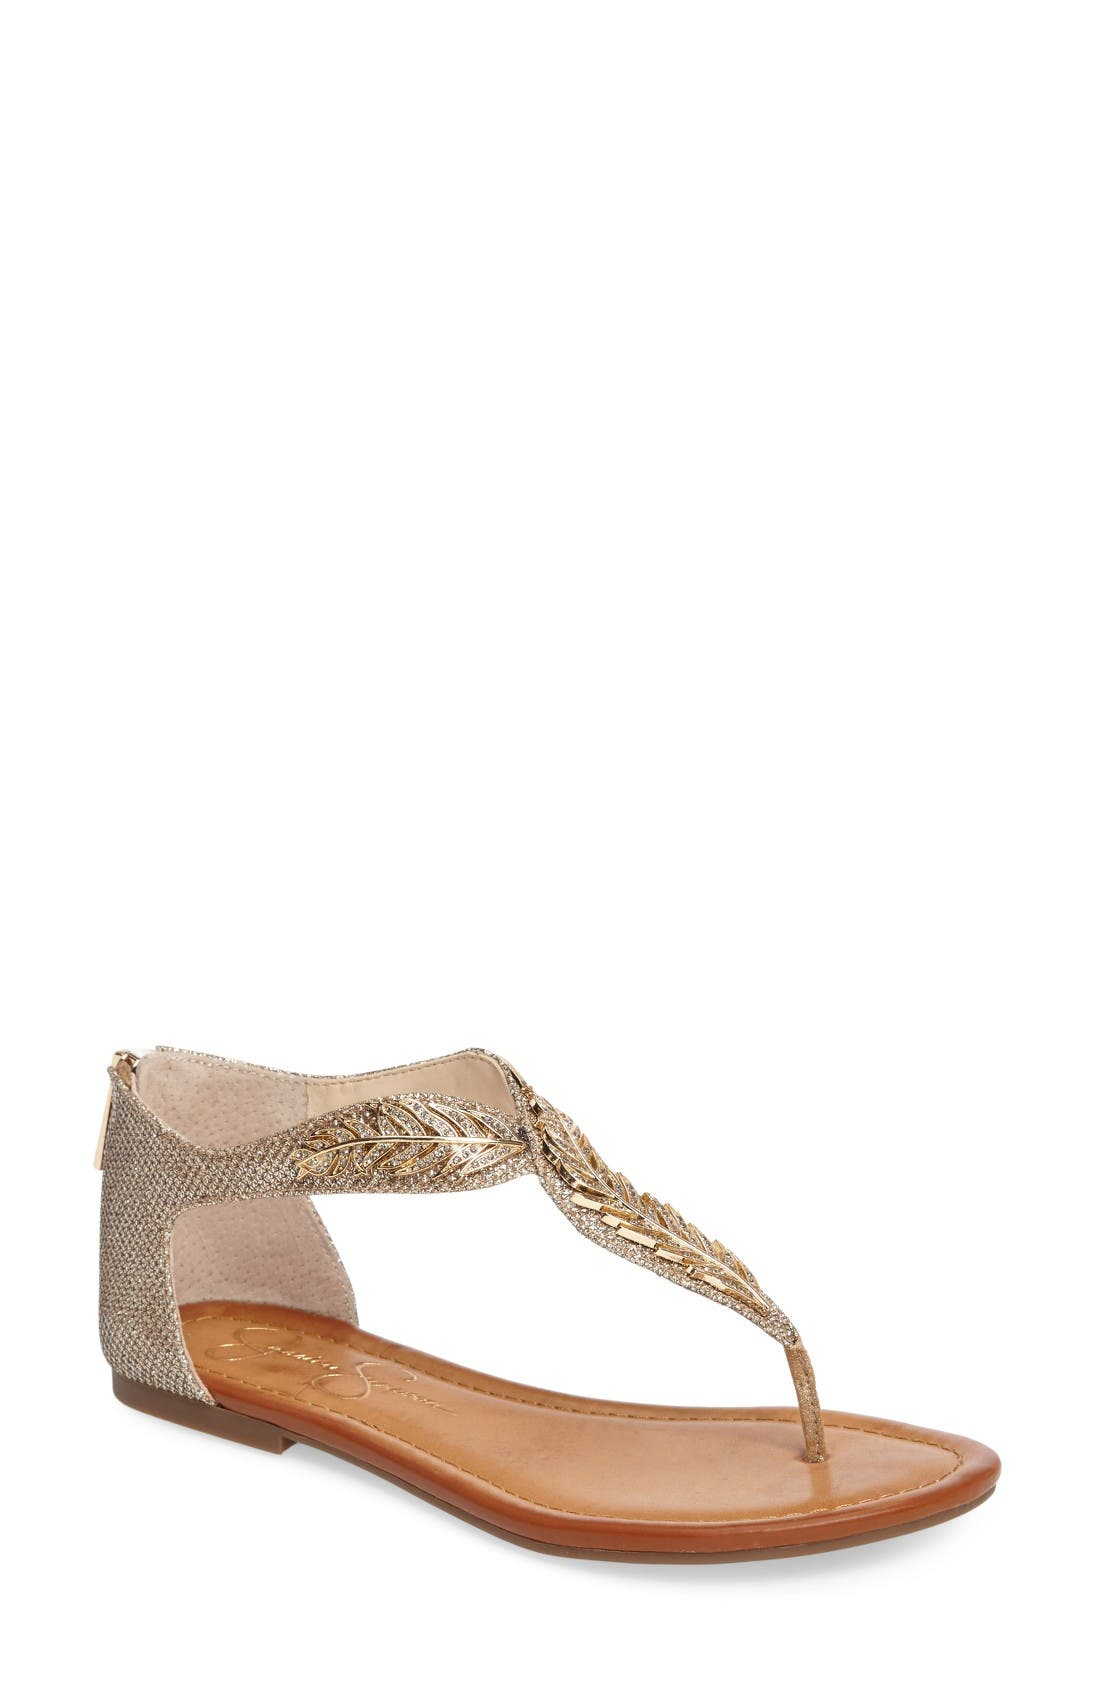 Kalie Embellished Feather Sandal,                         Main,                         color, Gold Fabric